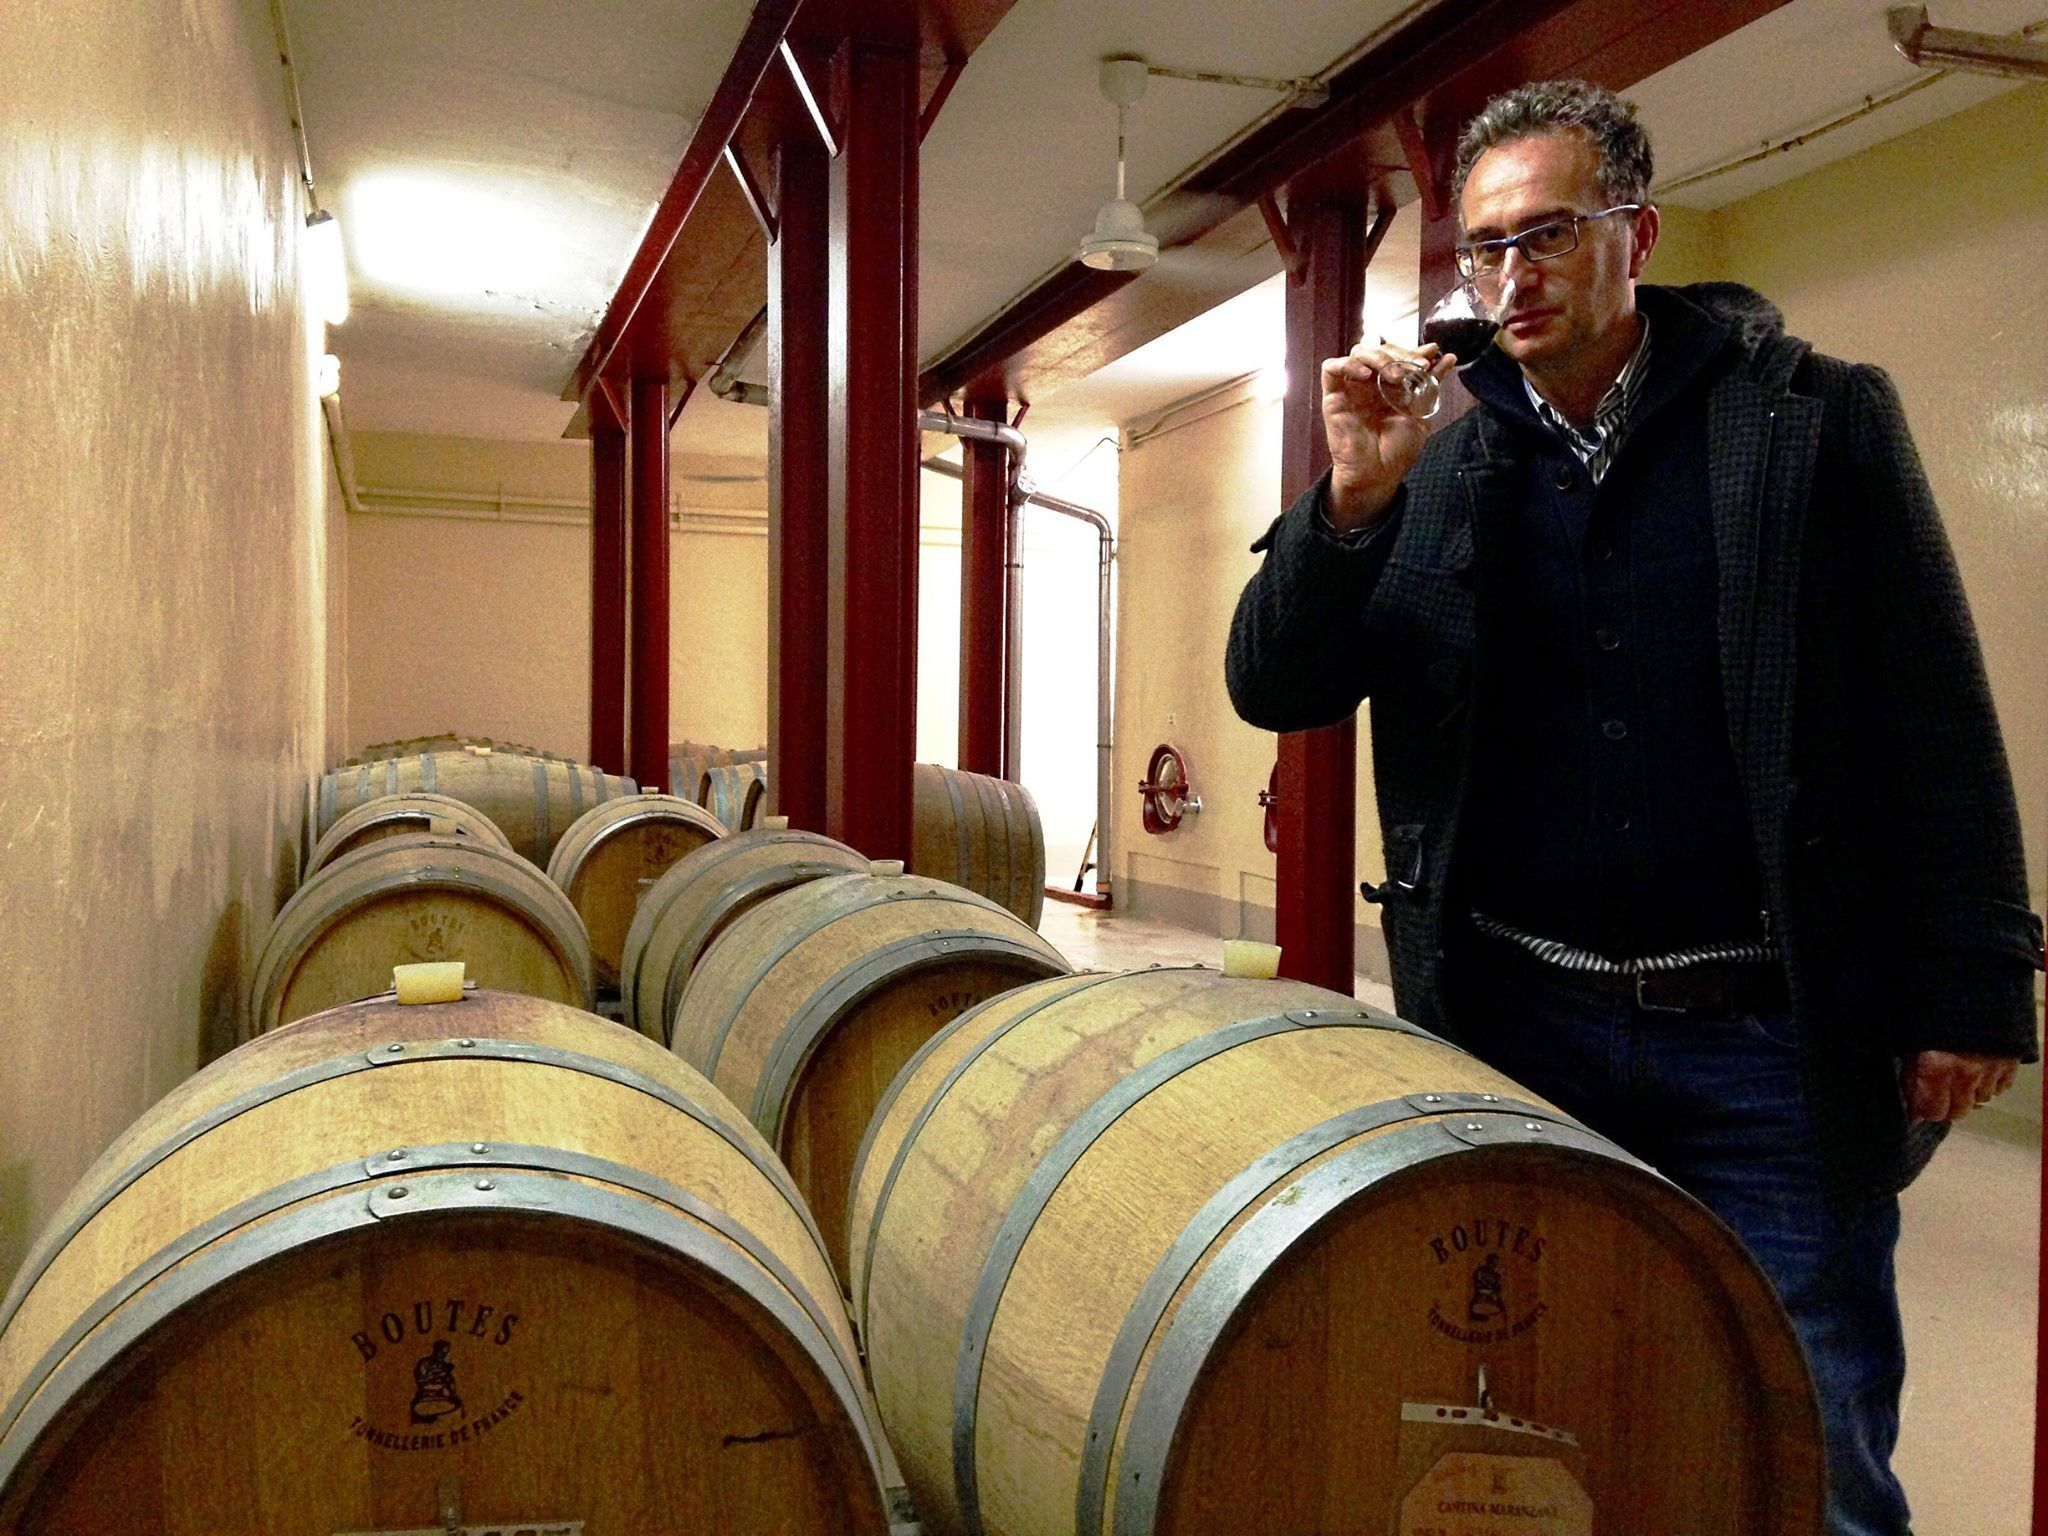 Our winemaker, Massimo Corti, tasting the Albarossa aged